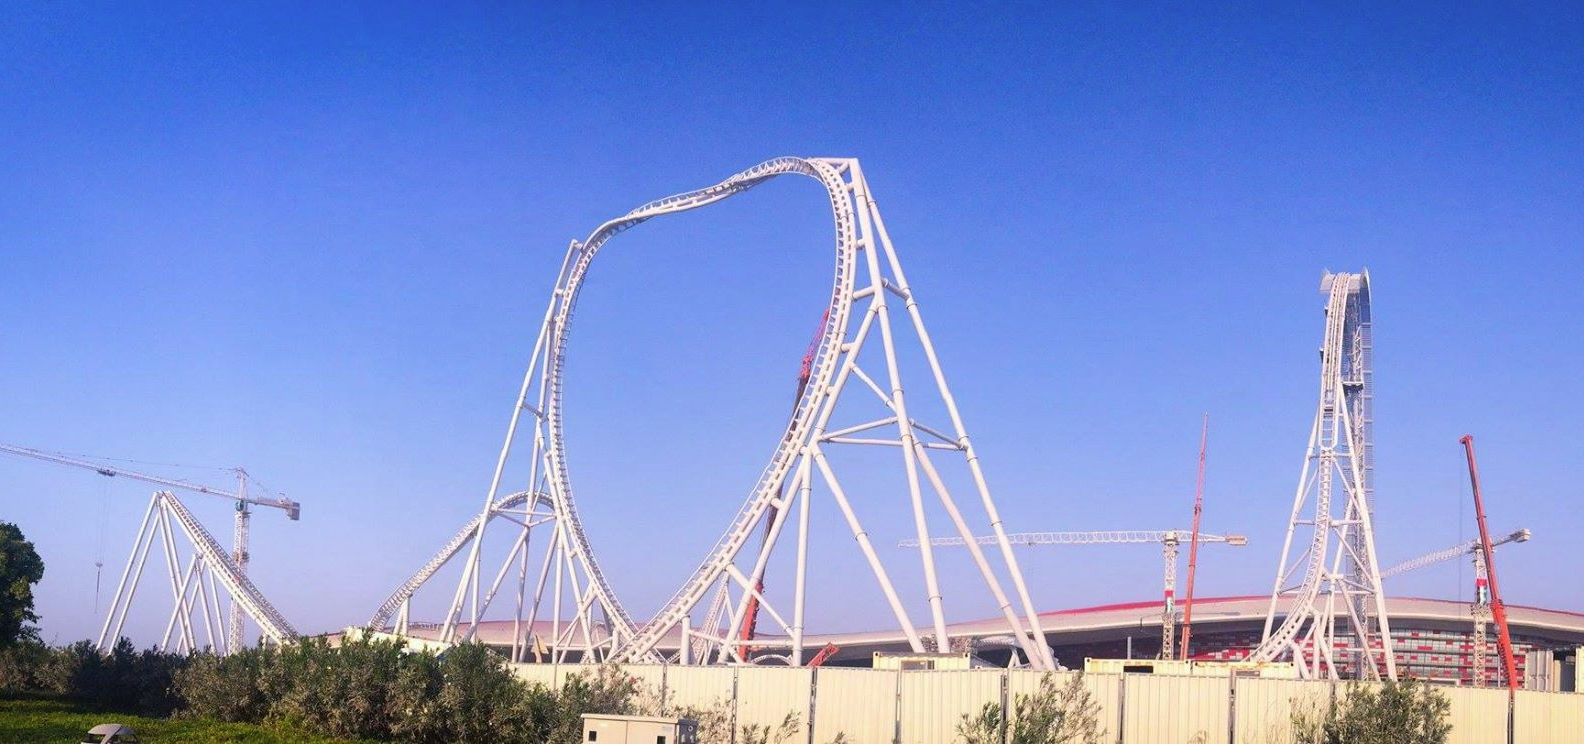 newsplusnotes ferrari world abu dhabi wraps up construction of new intamin c. Cars Review. Best American Auto & Cars Review